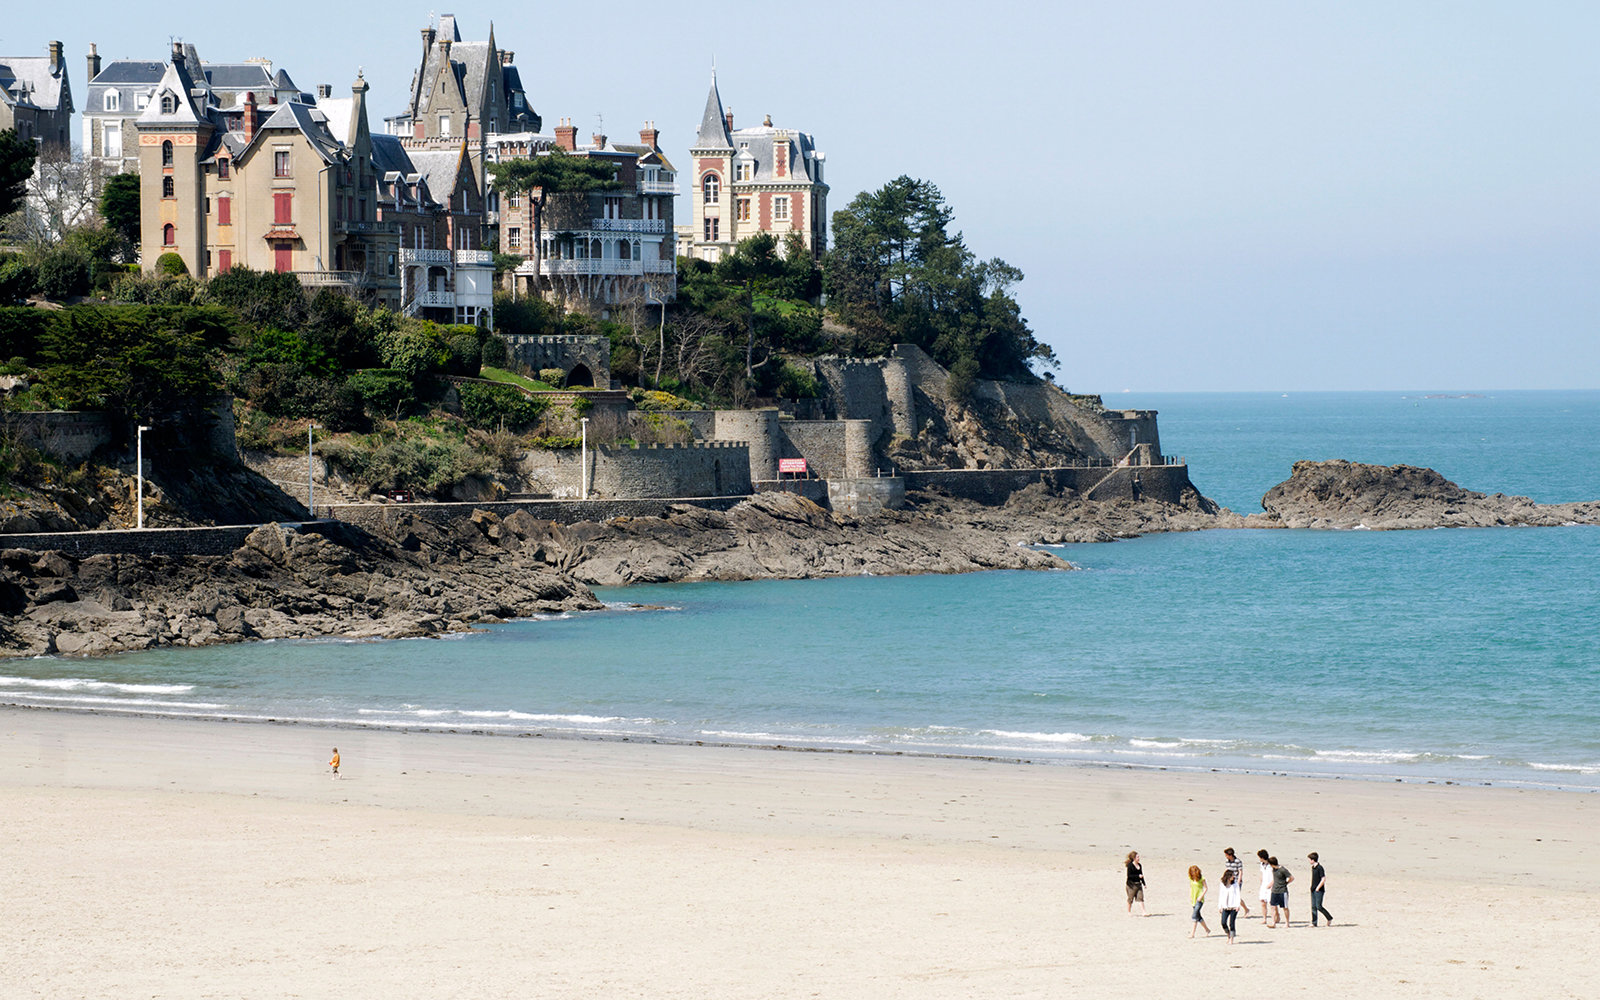 17 Best images about Beaches in Brittany on Pinterest ...  |Beach Bretagne France